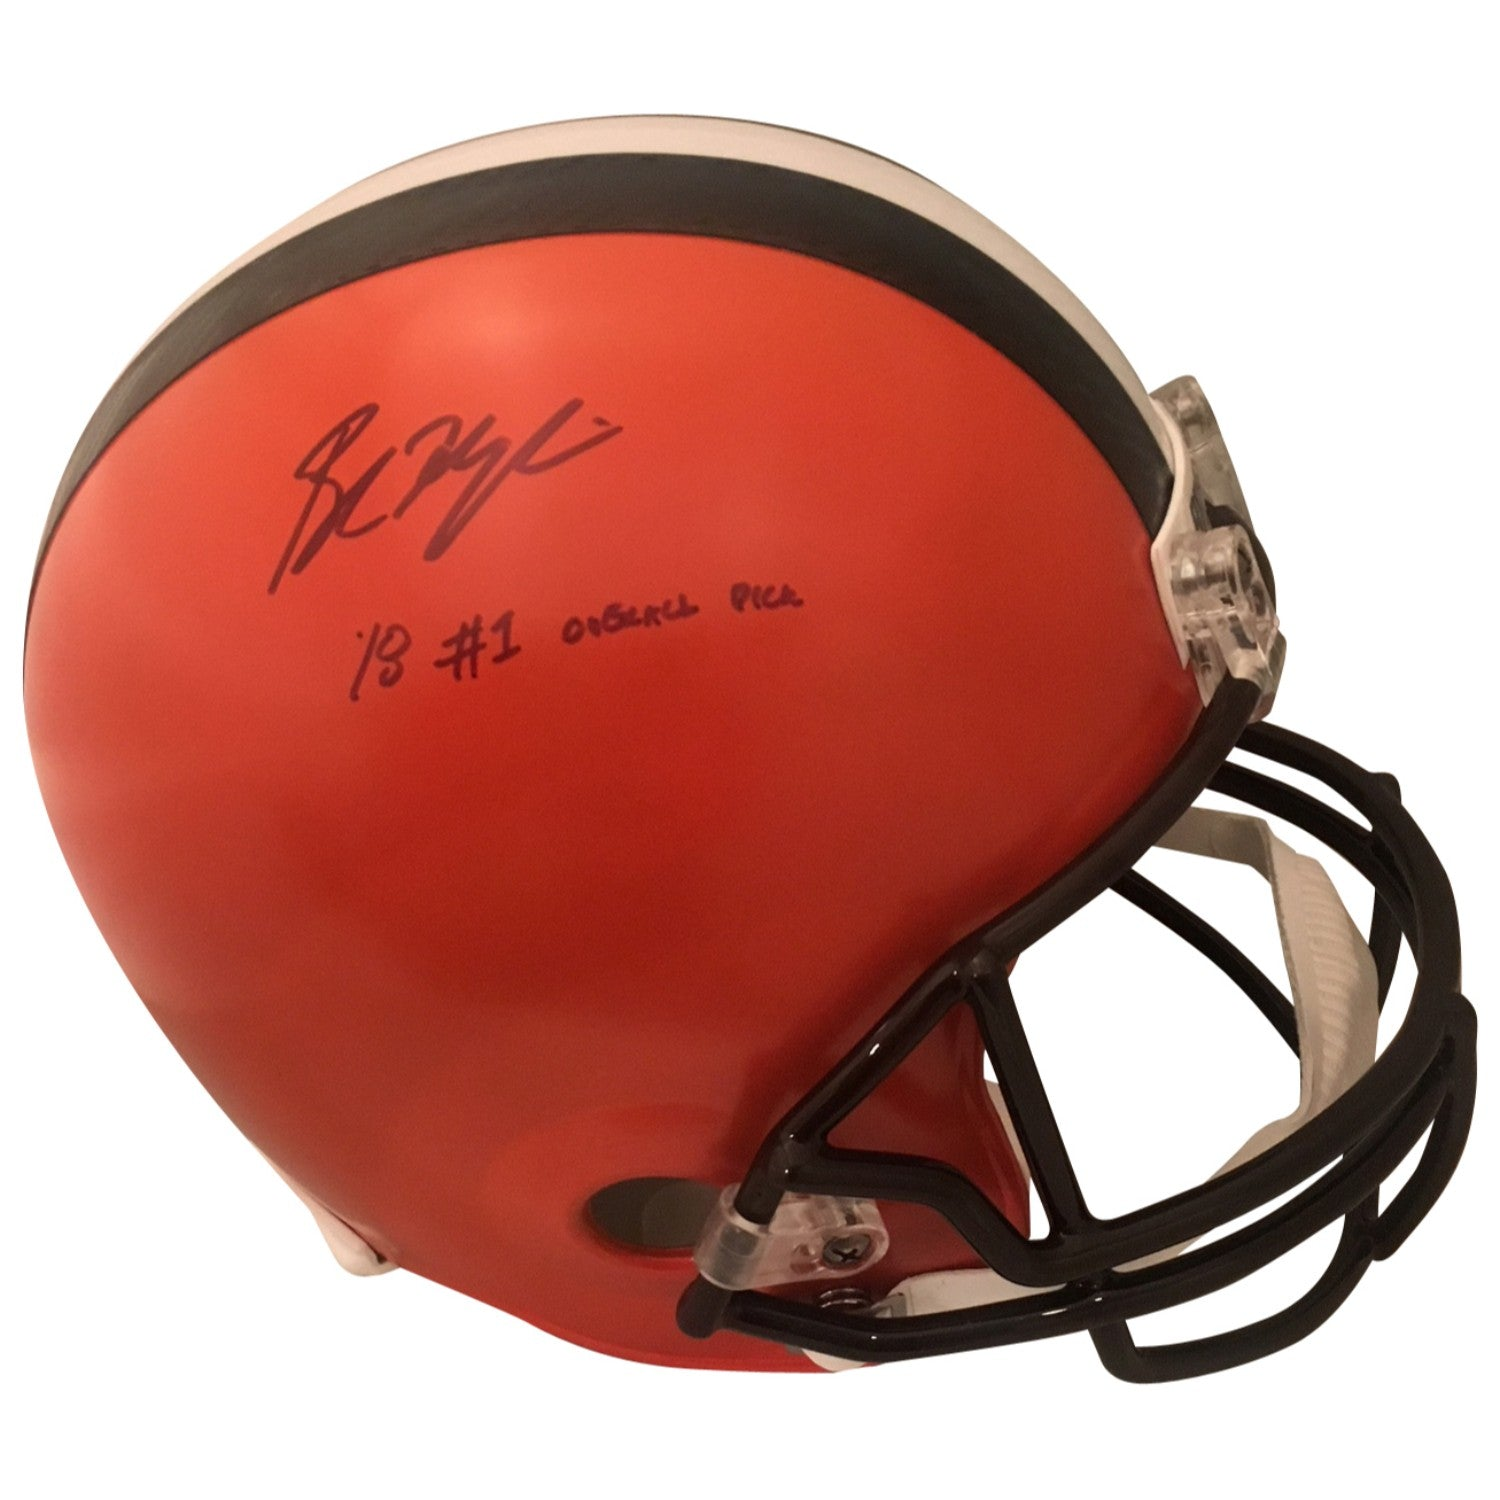 Baker Mayfield Cleveland Browns Oklahoma Sooners Autographed NFL Signed  Football PSA DNA COA Powers Collectibles 56eca5660